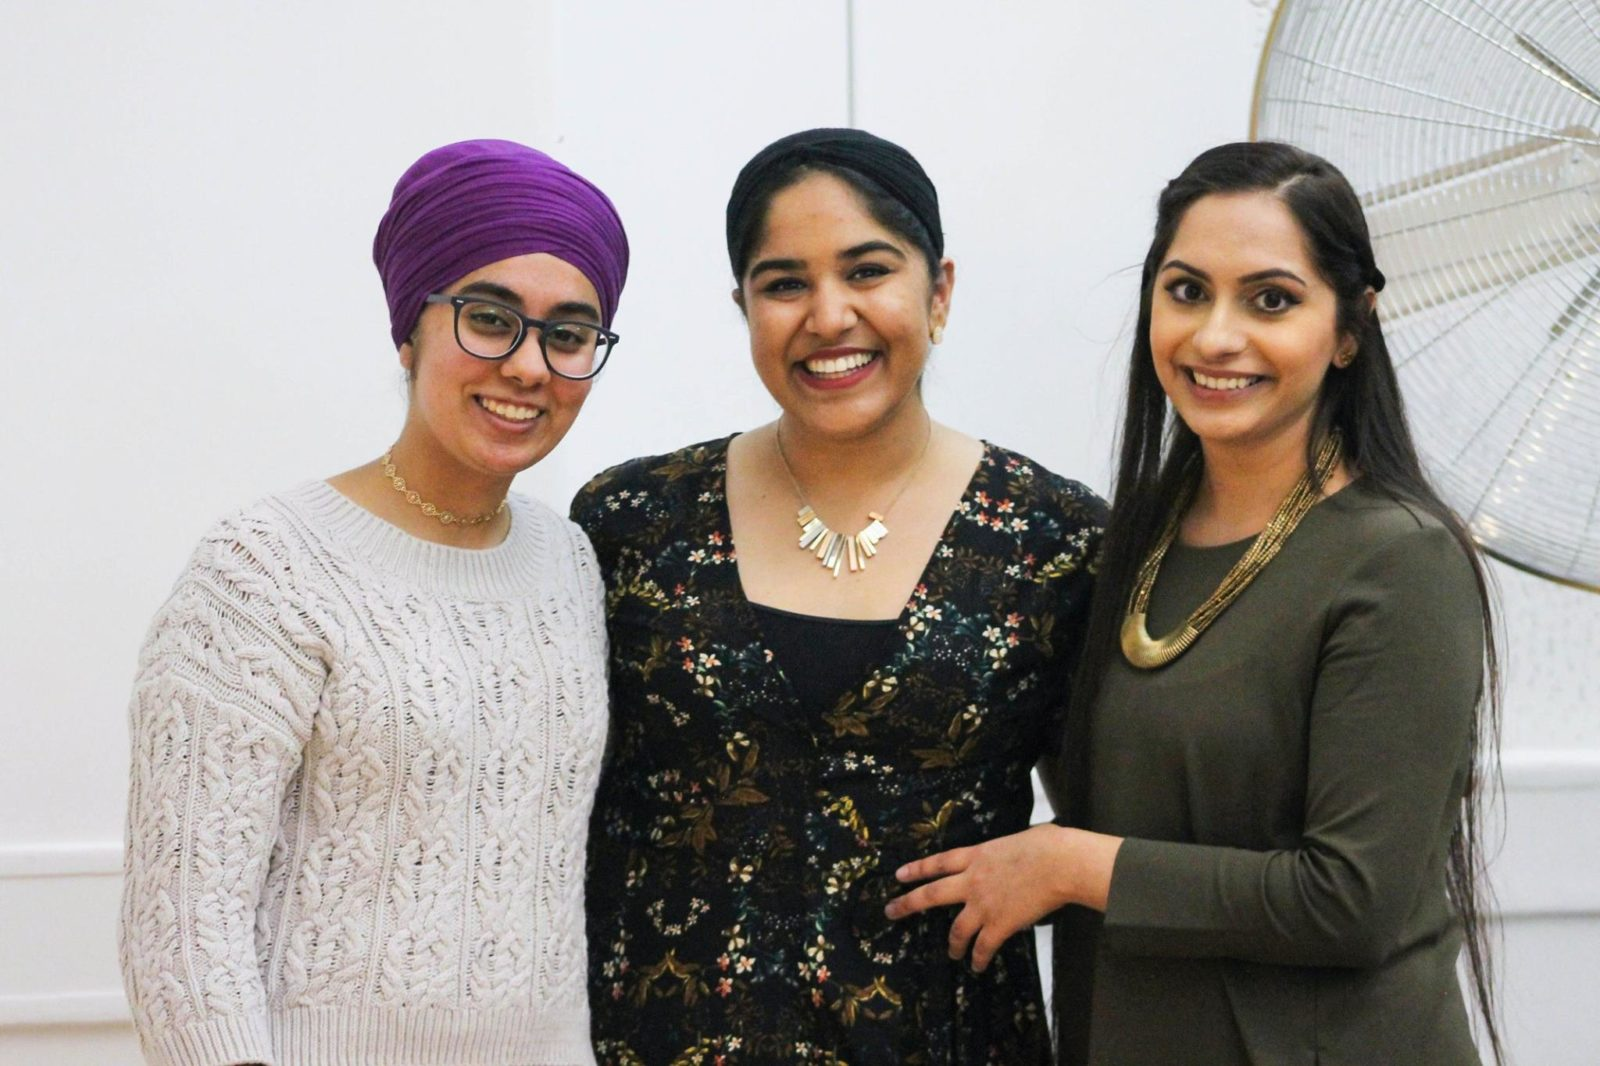 Kaur Voices are Strong & Vibrant